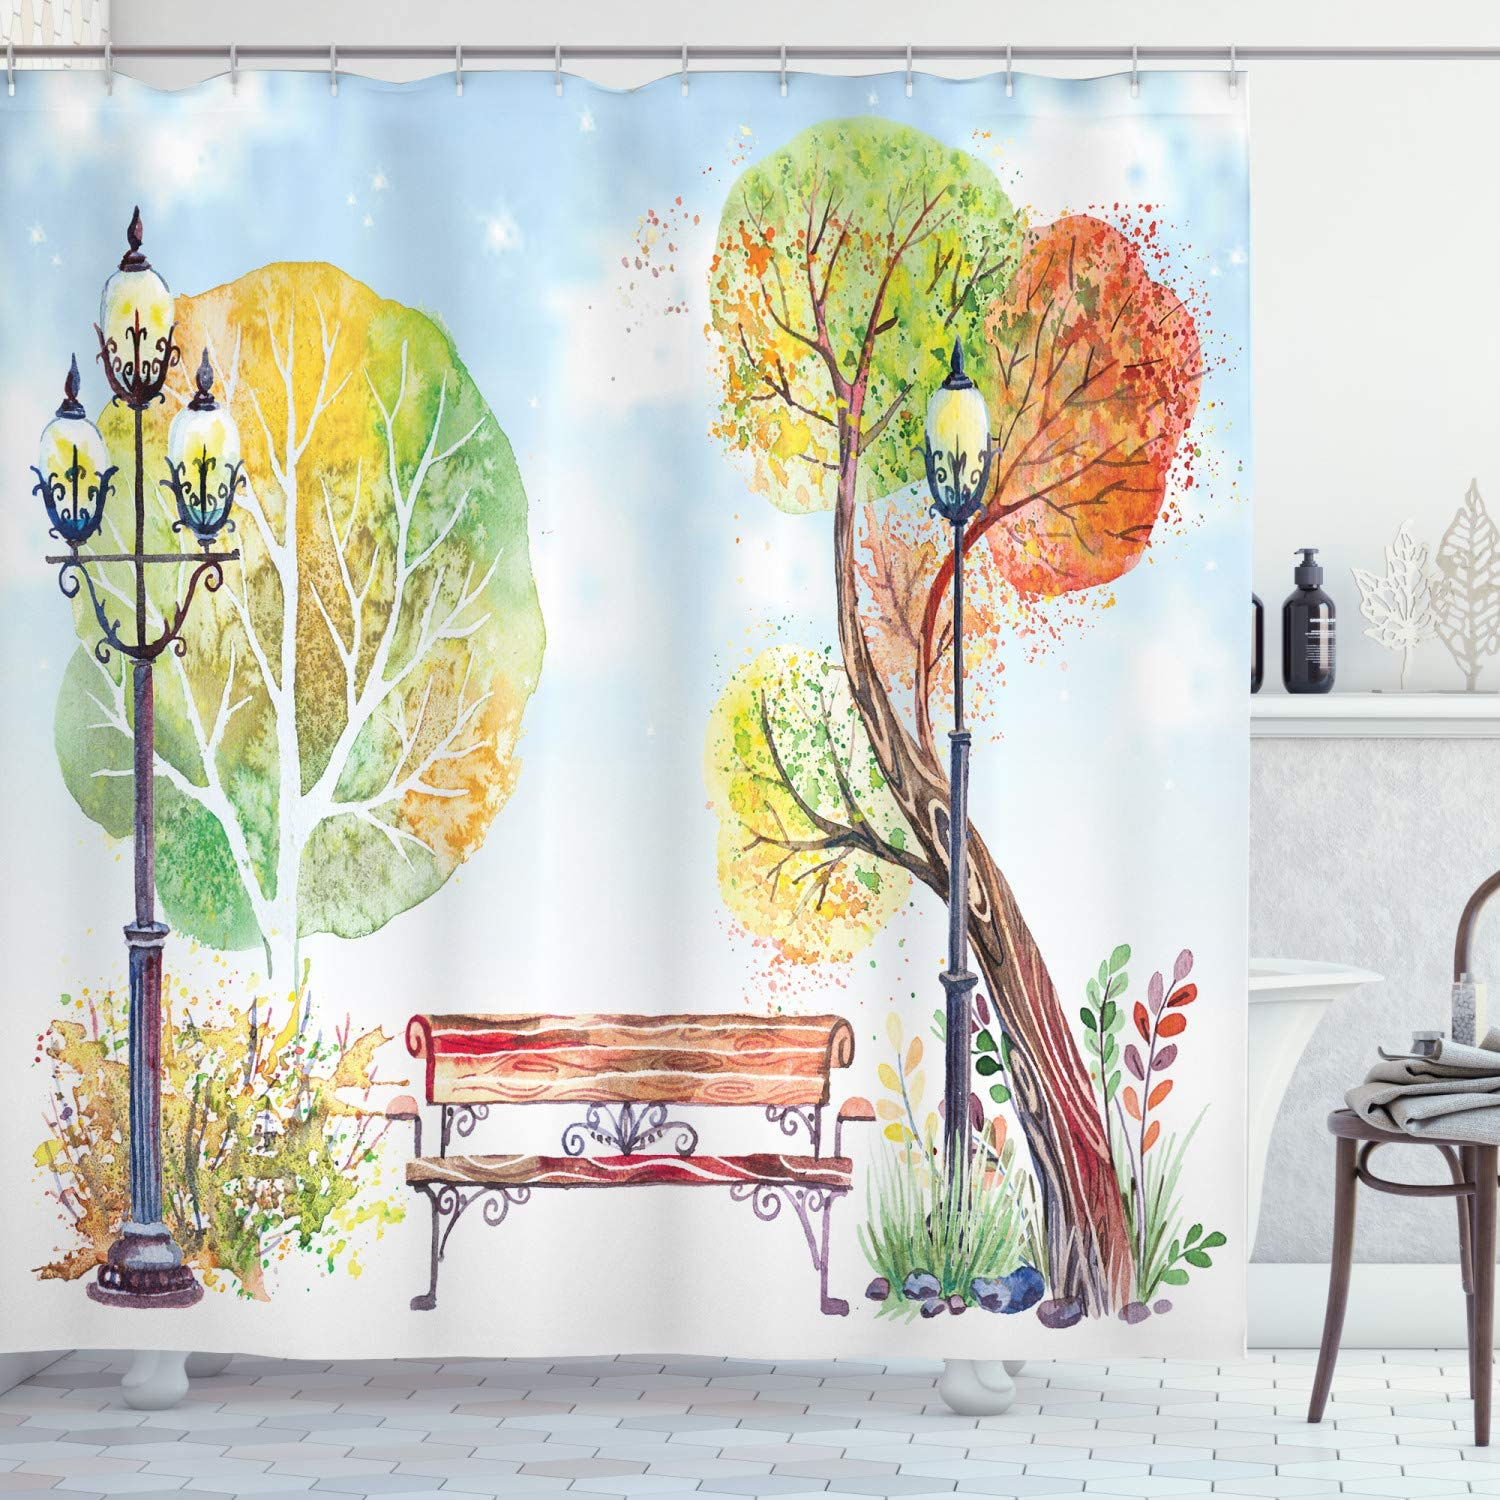 Ambesonne Lantern Shower Curtain, Colorful Fall Trees and Wooden Bench in The City Park with Blue Sky in The Autumn Season Artwork, Cloth Fabric Bathroom Decor Set with Hooks, 70